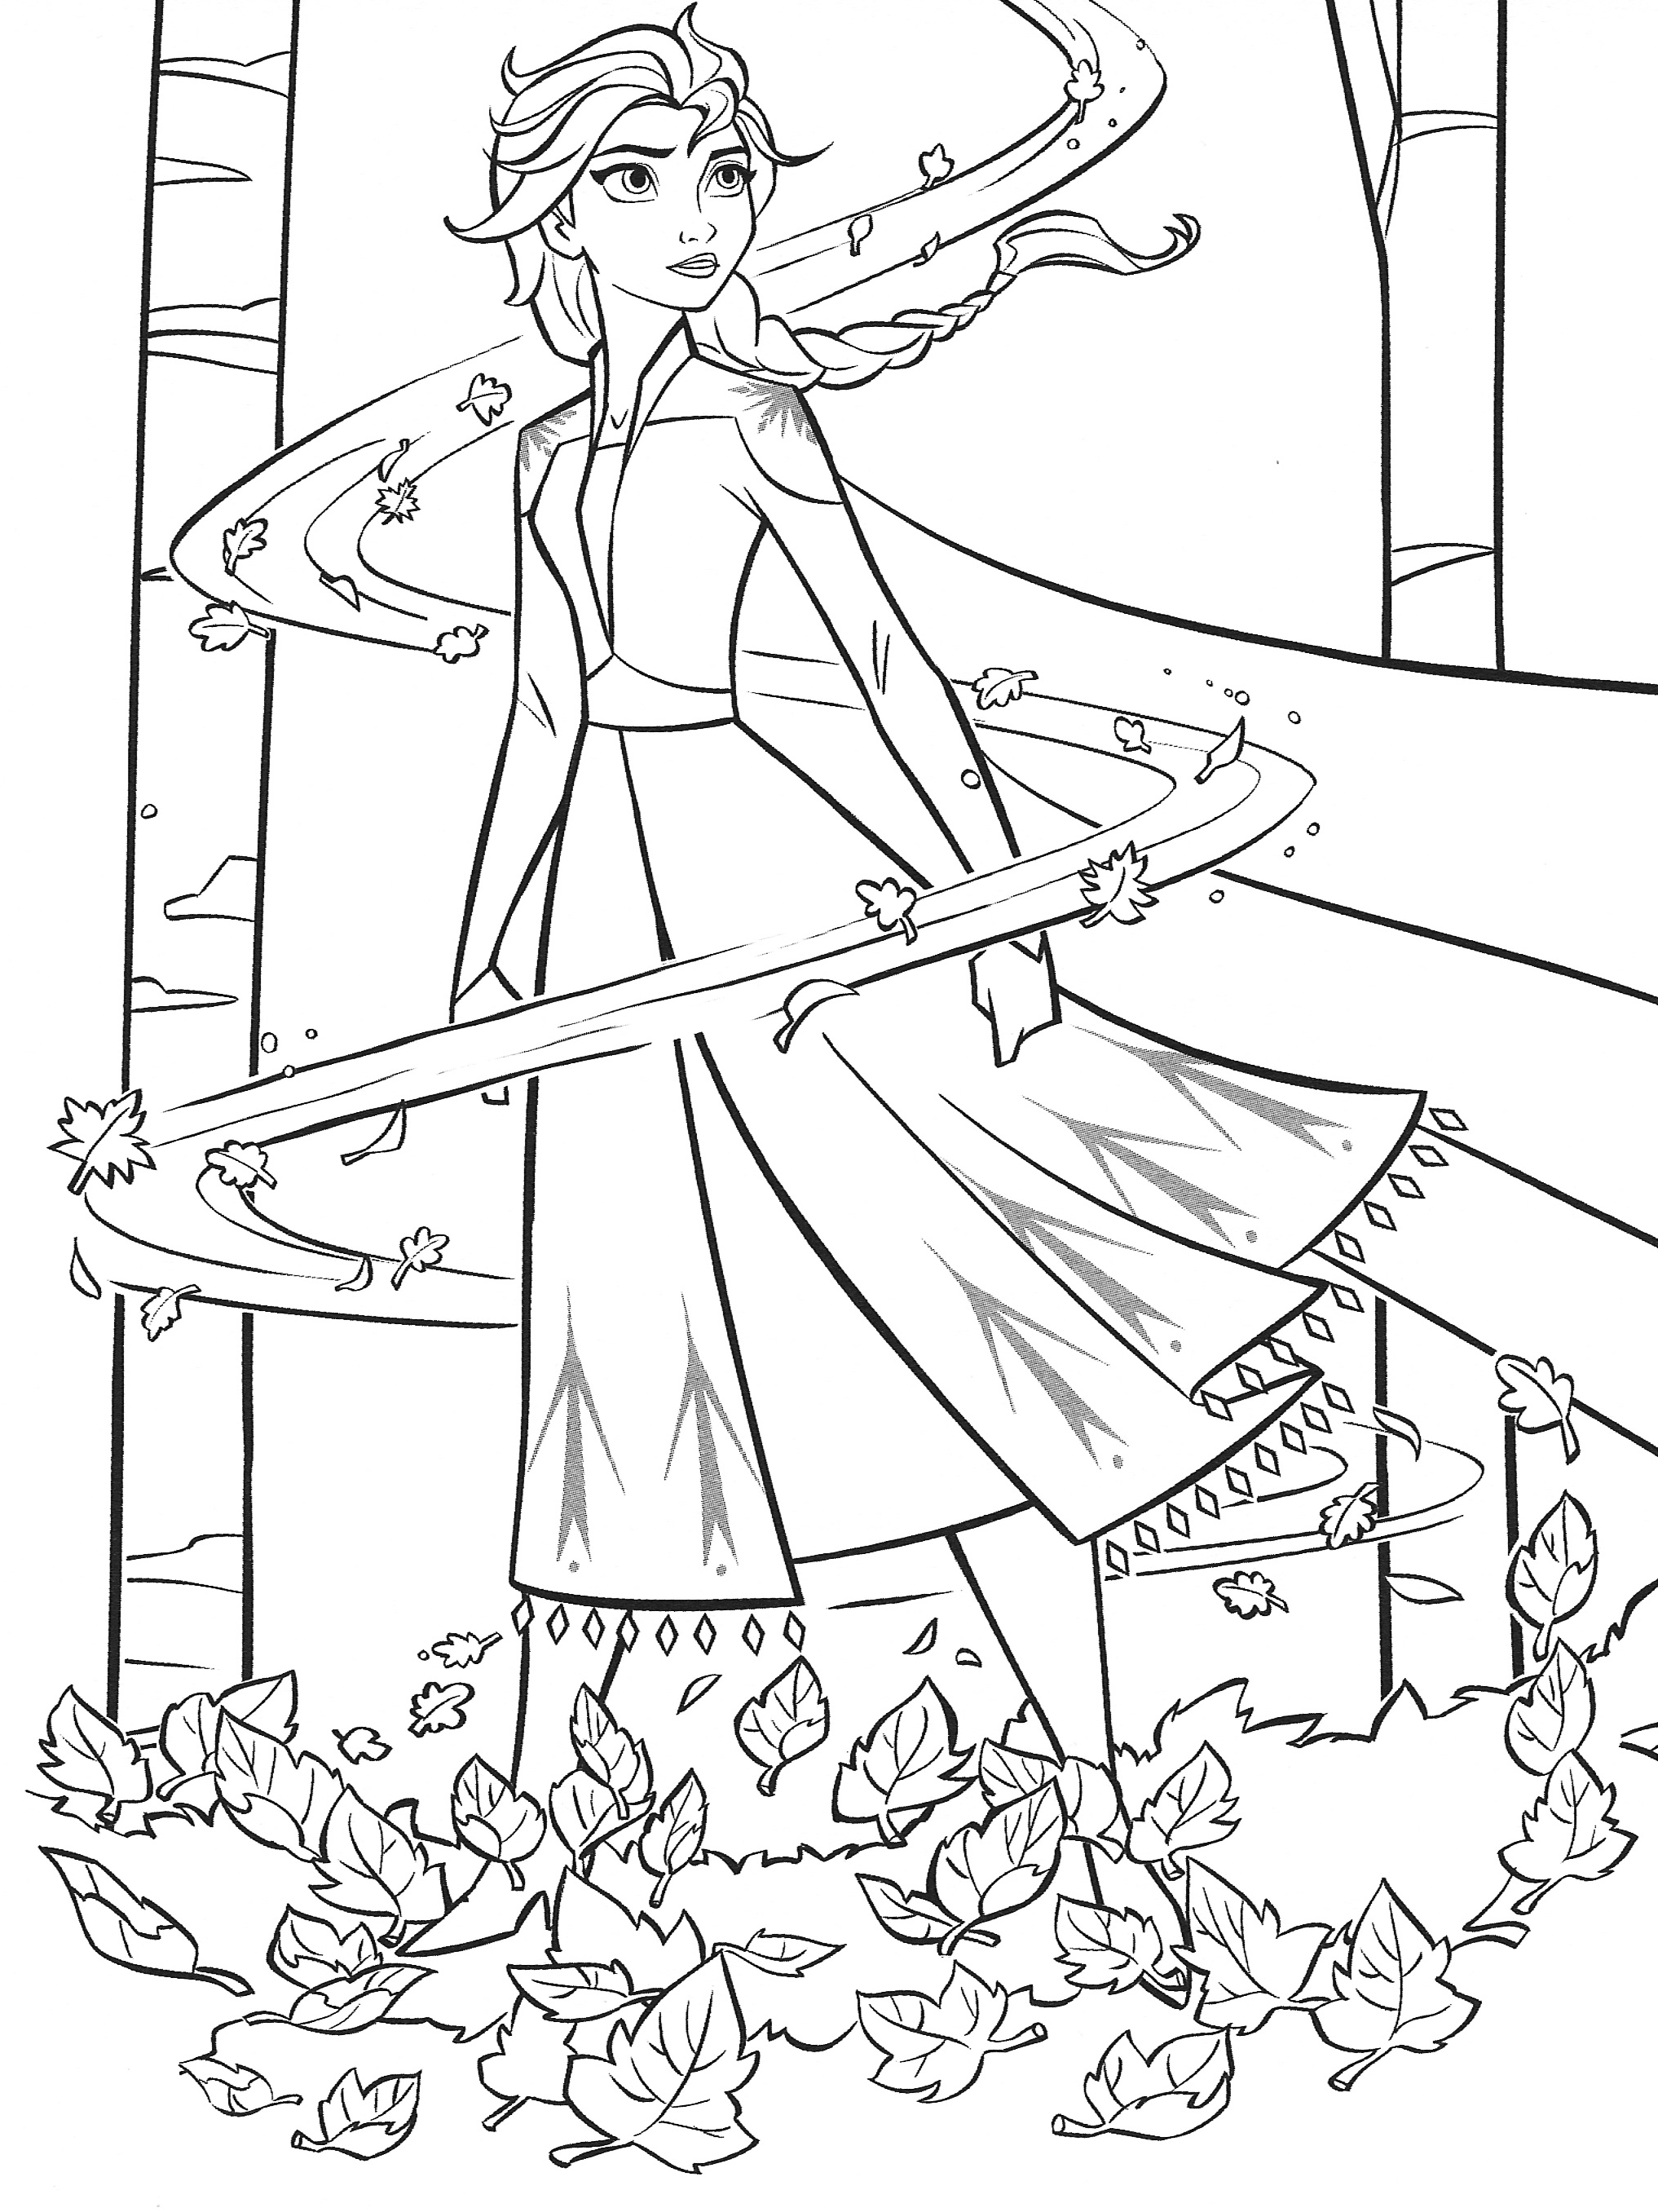 frozen coloring books new frozen 2 coloring pages with elsa youloveitcom coloring frozen books